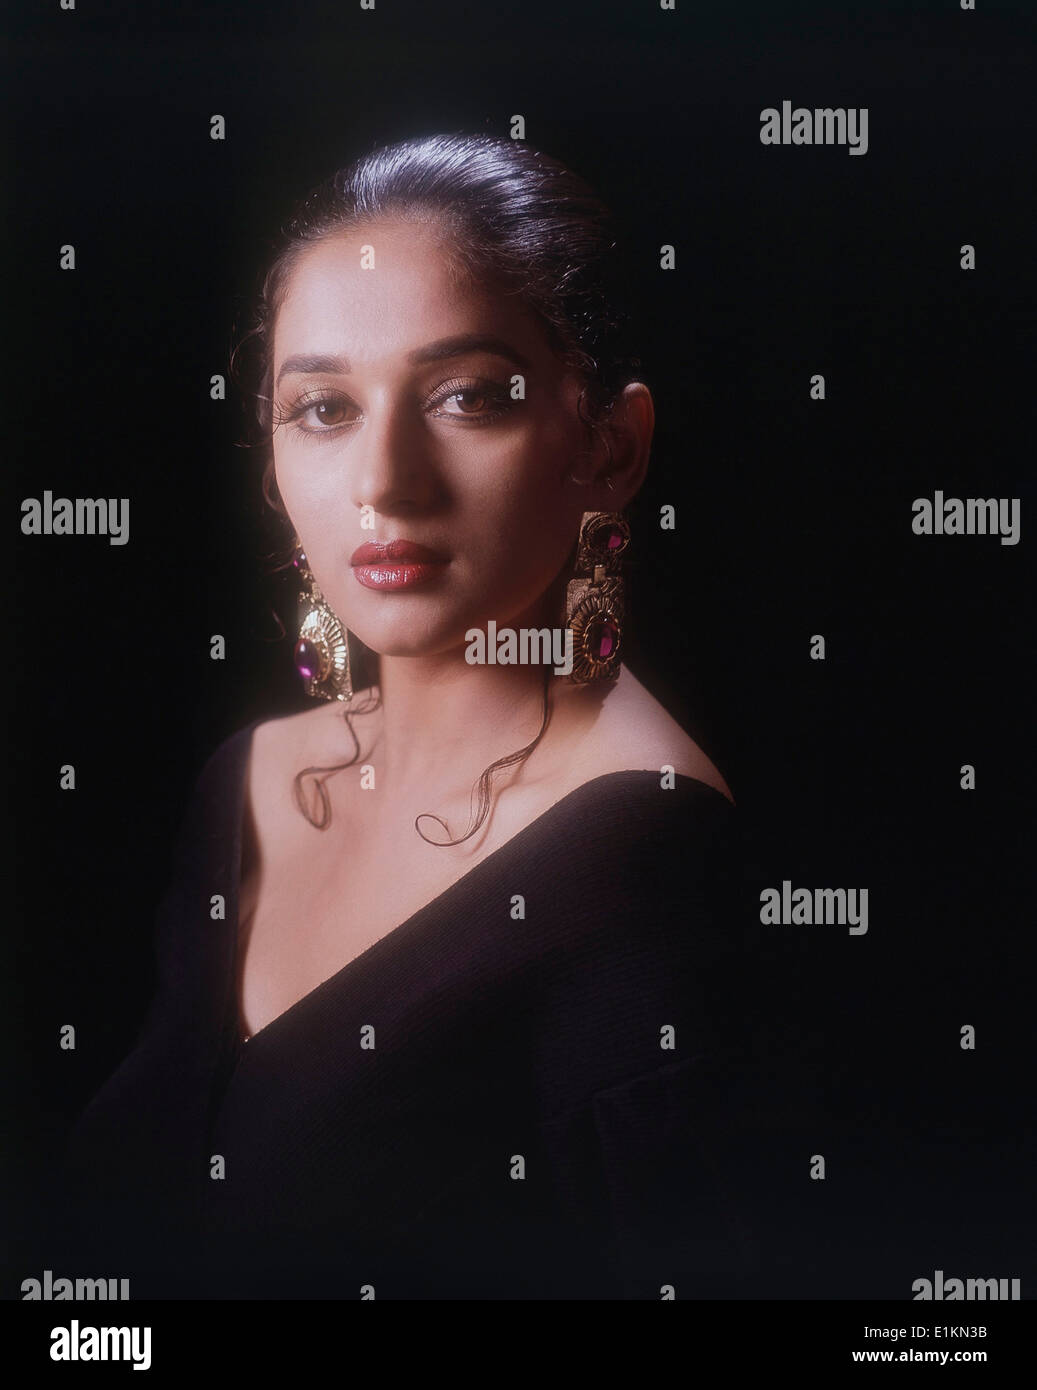 madhuri dixit xxx photos